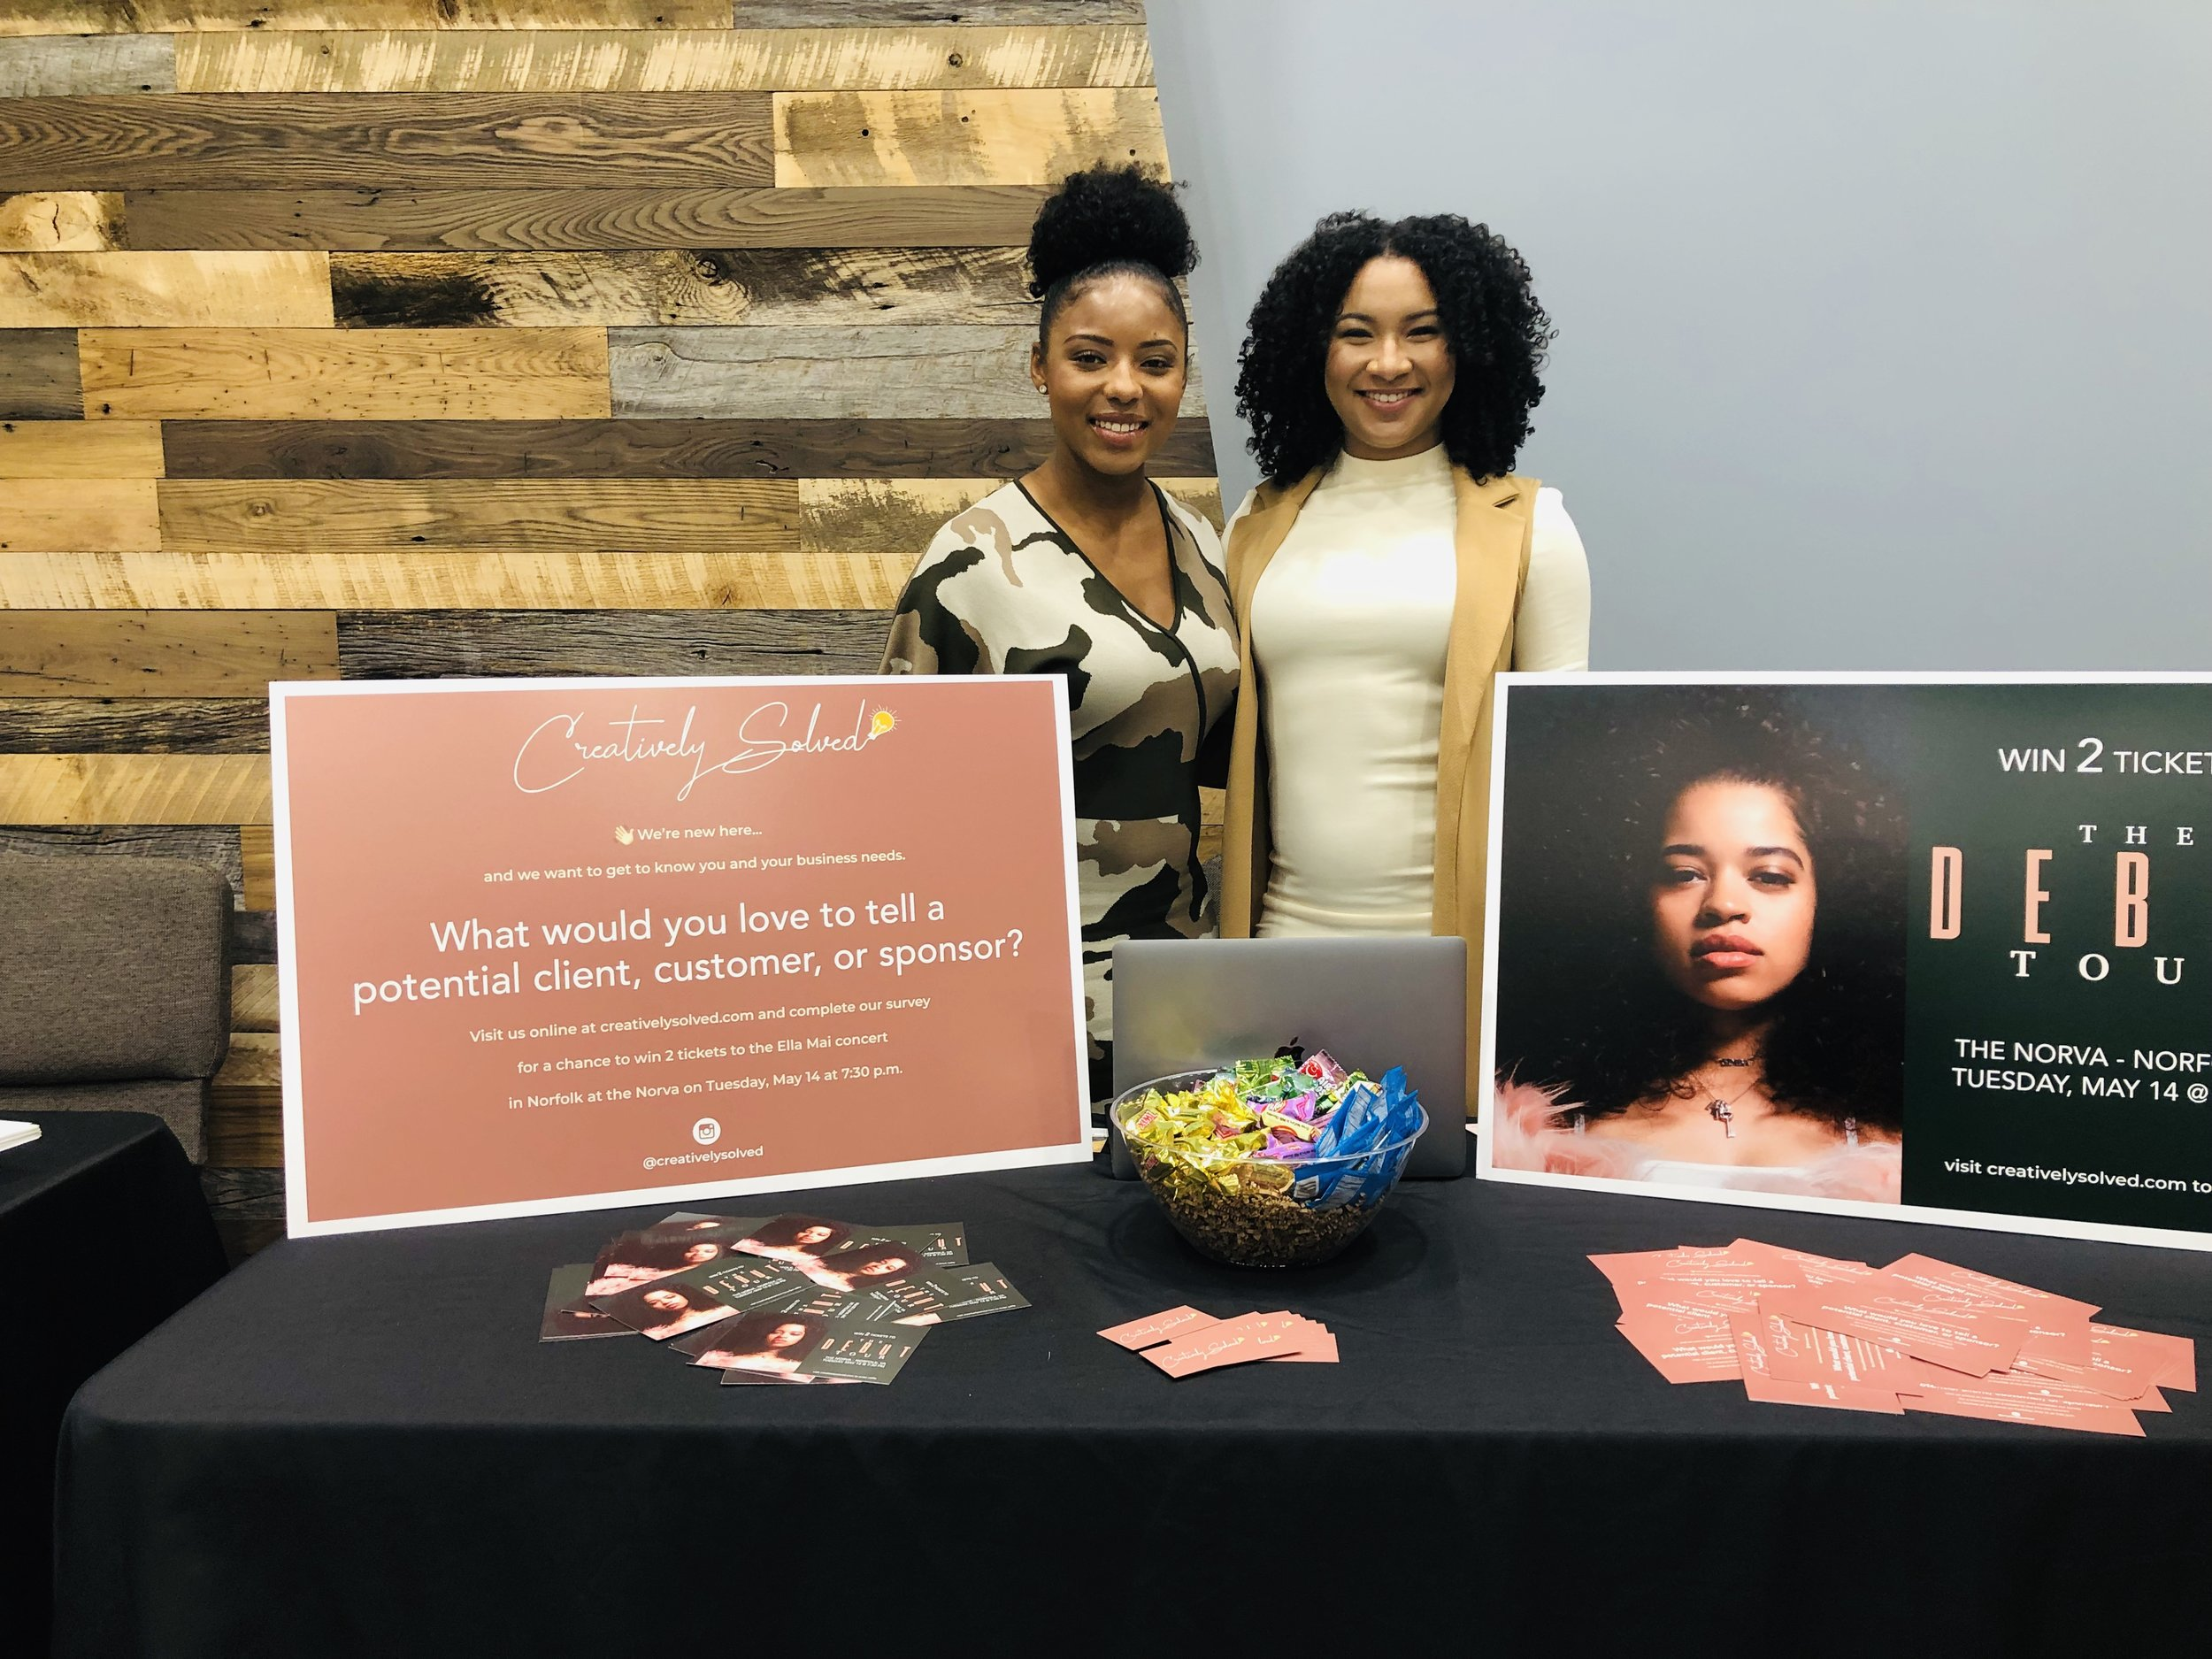 - Meet the ladies of Creatively Solved! They help small business generate ongoing revenue through web design and digital strategy. Check them out on IG @creativelysolved!